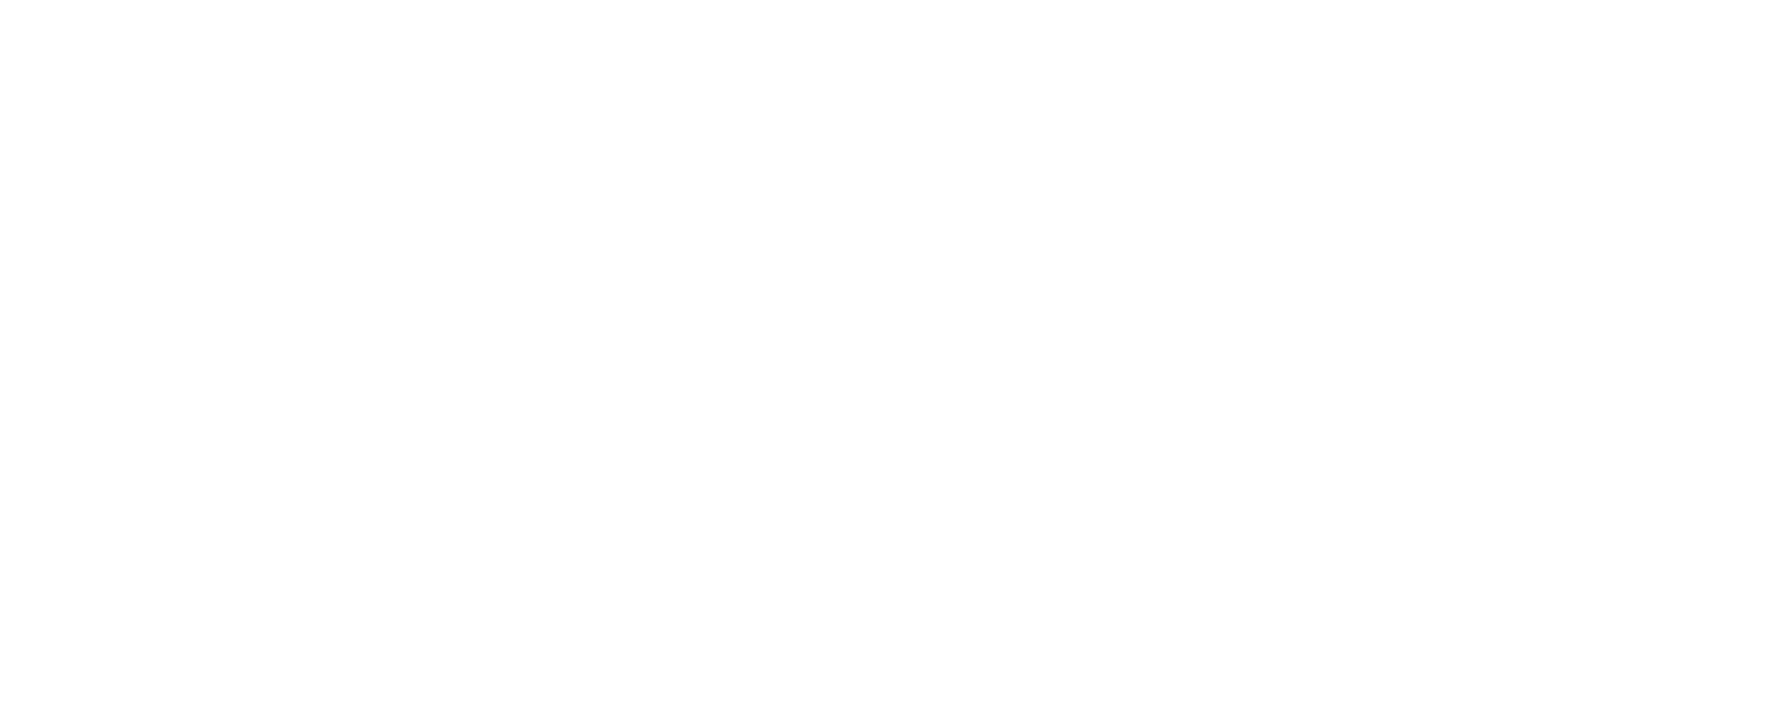 Eagle Mechanical, Inc.